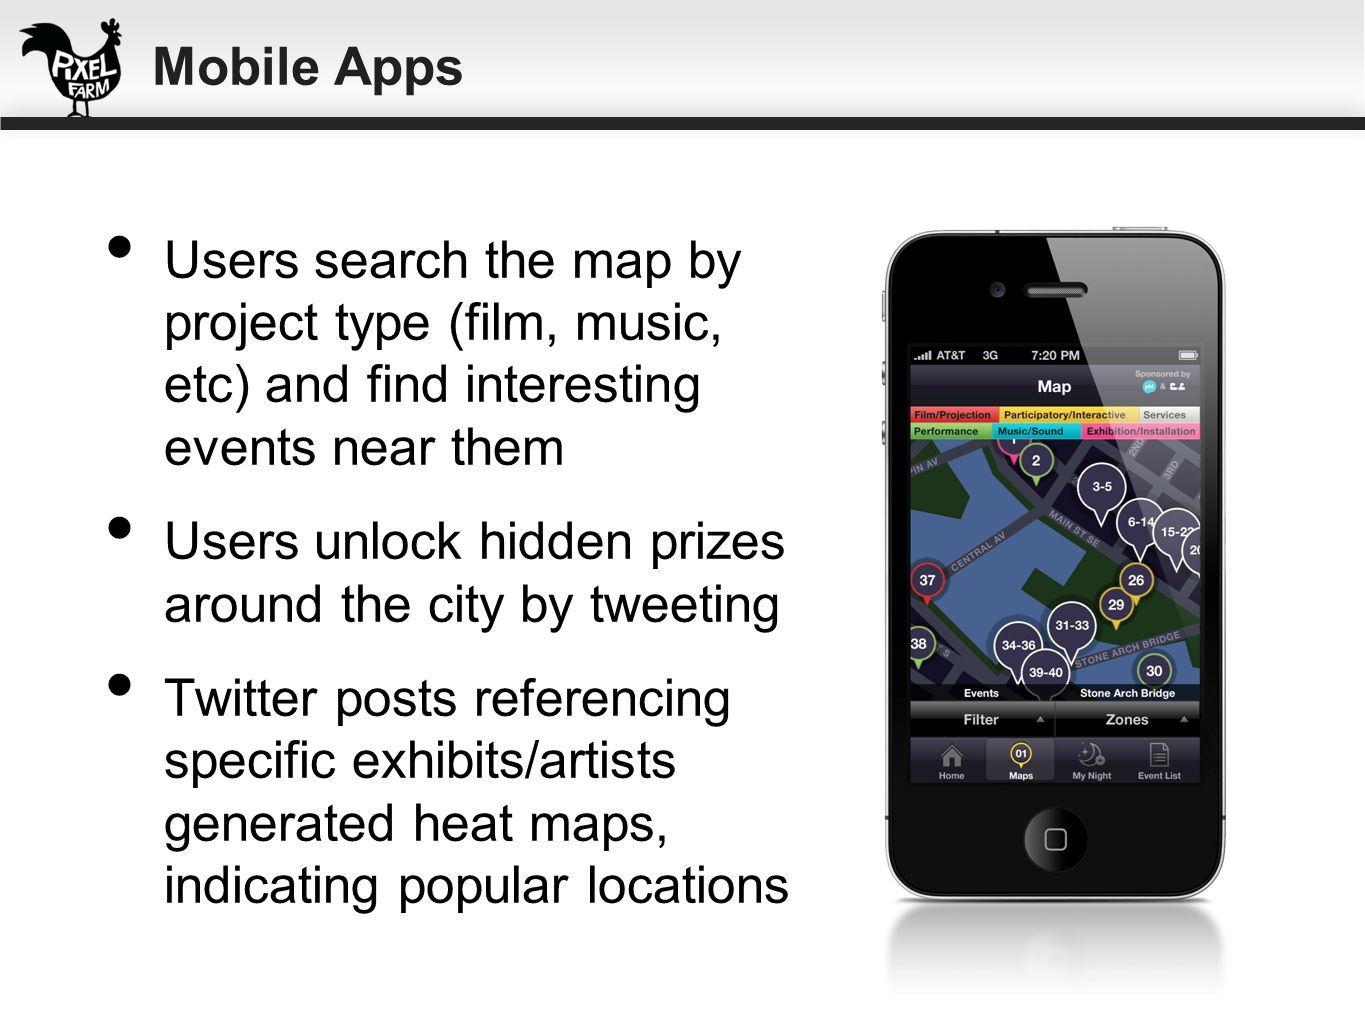 Mobile AppsUsers search the map by project type (film, music, etc) and find interesting events near them.